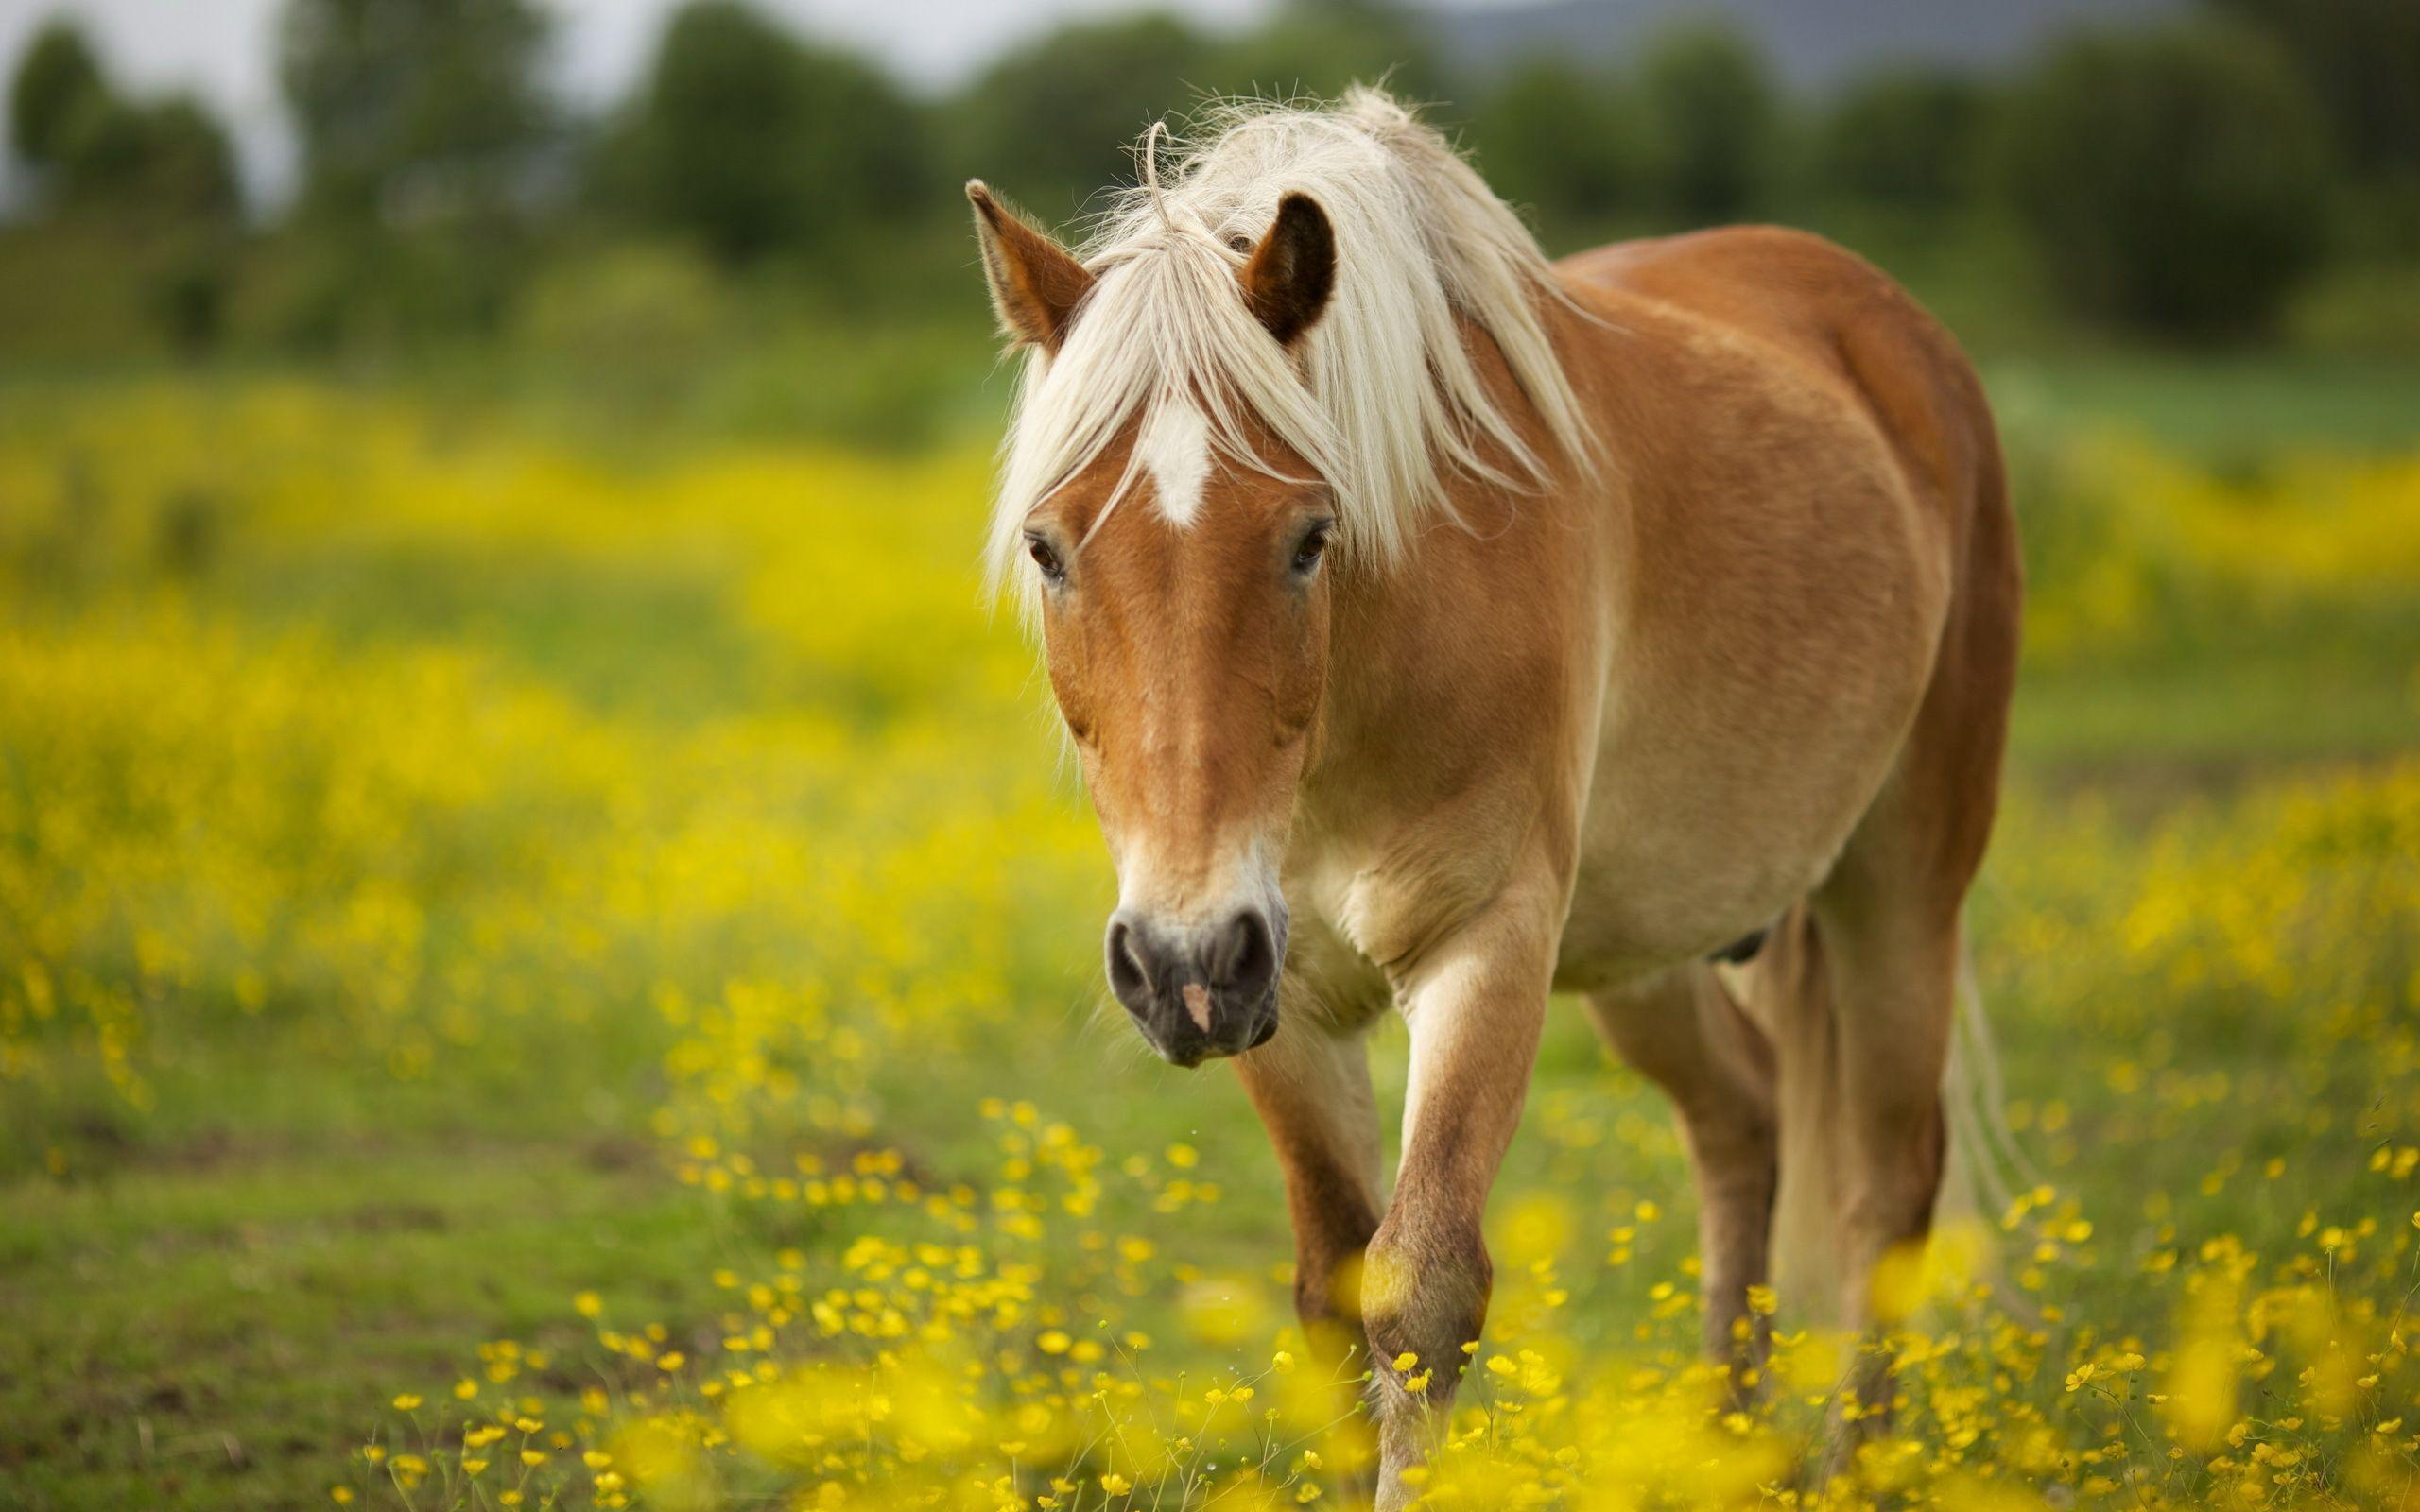 horse wallpaper awesome pair - photo #33